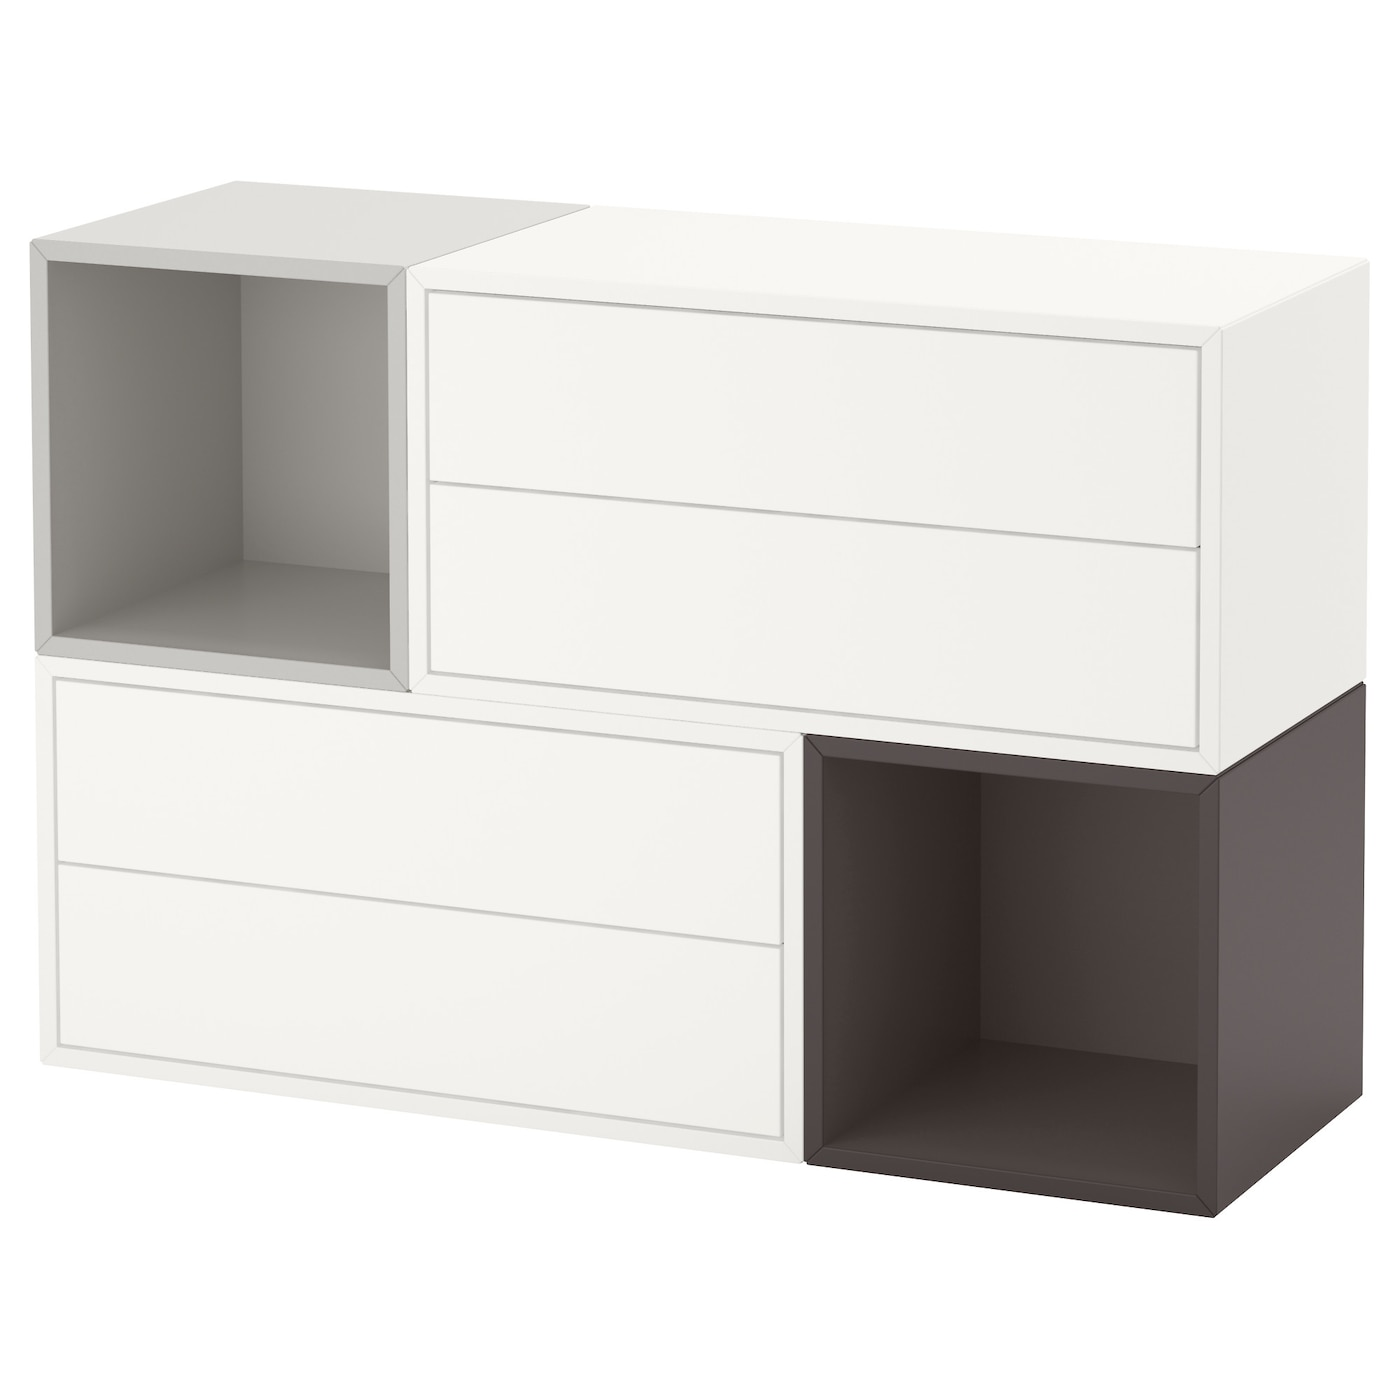 Eket wall mounted cabinet combination white light grey dark grey 105x35x70 cm - Caisson mural de rangement ikea ...